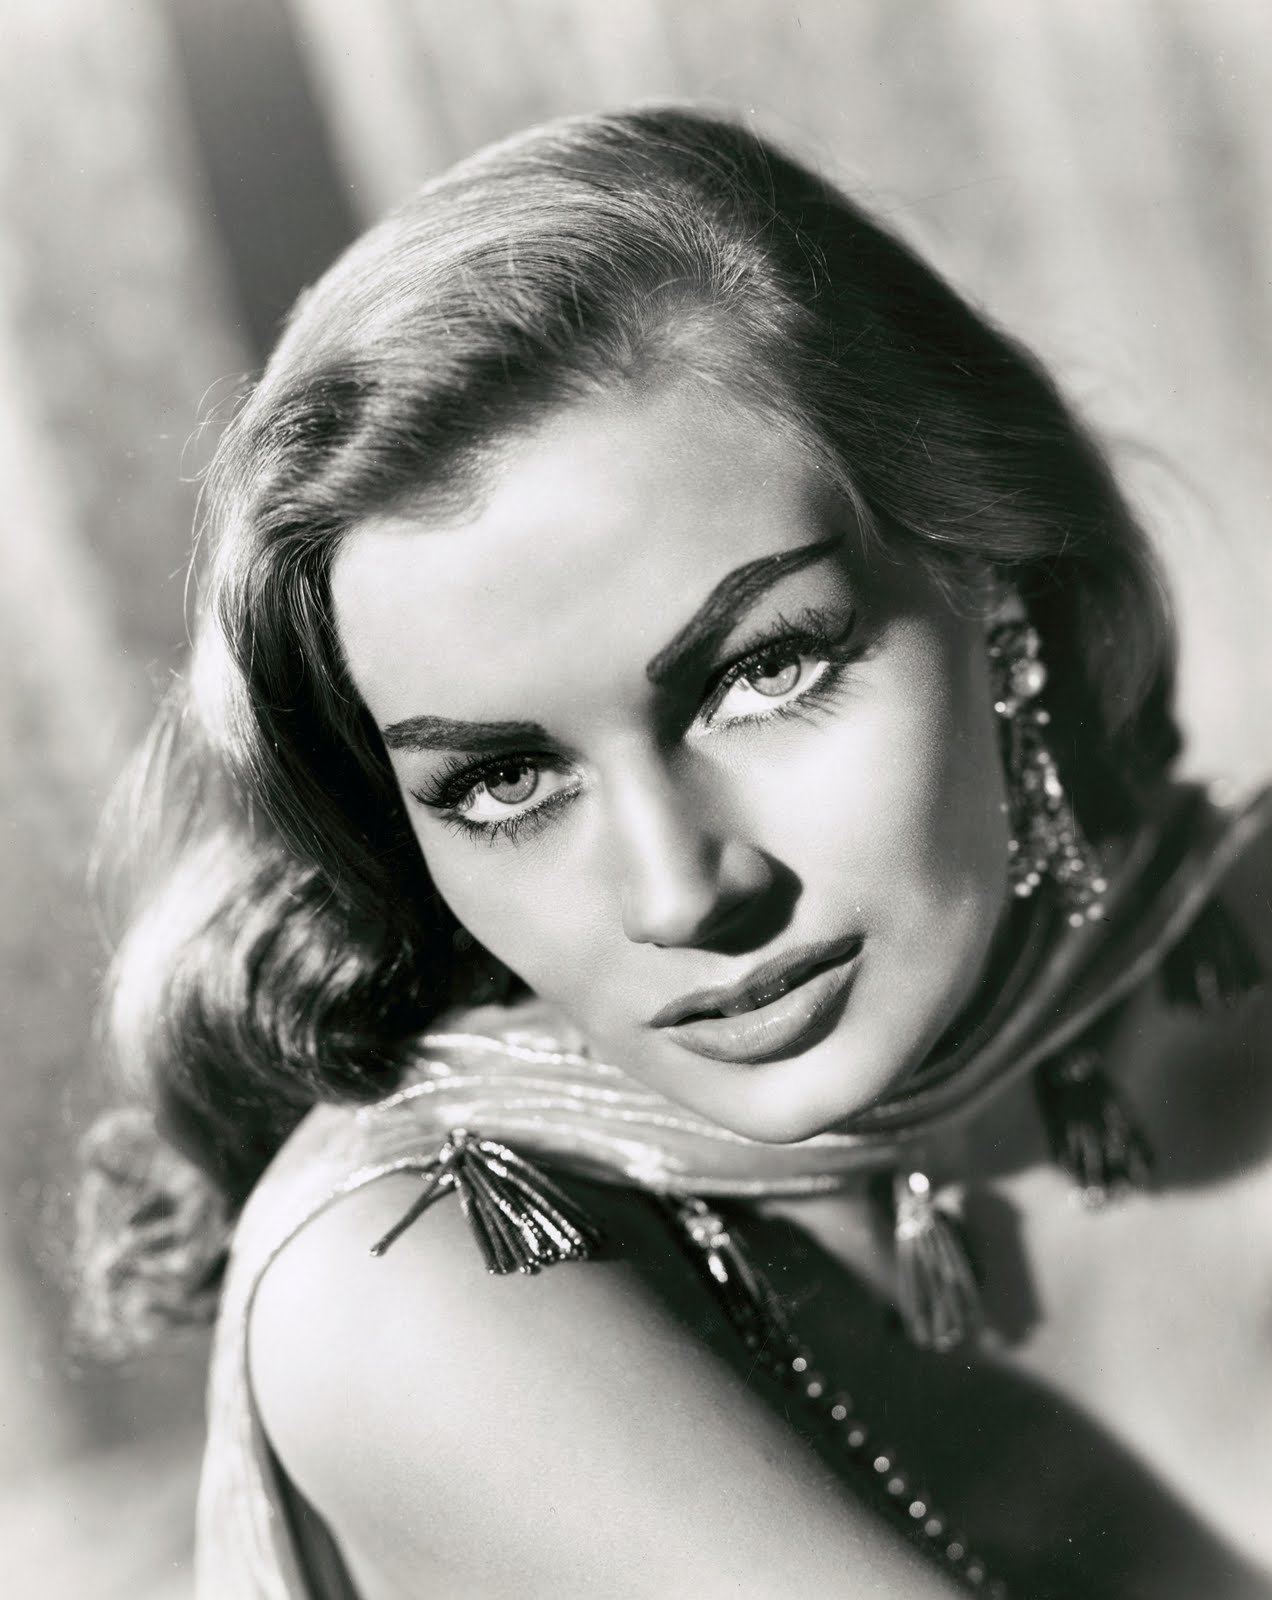 AnitaEkberg2 Here is hoping that you get everything you wished for and more :)